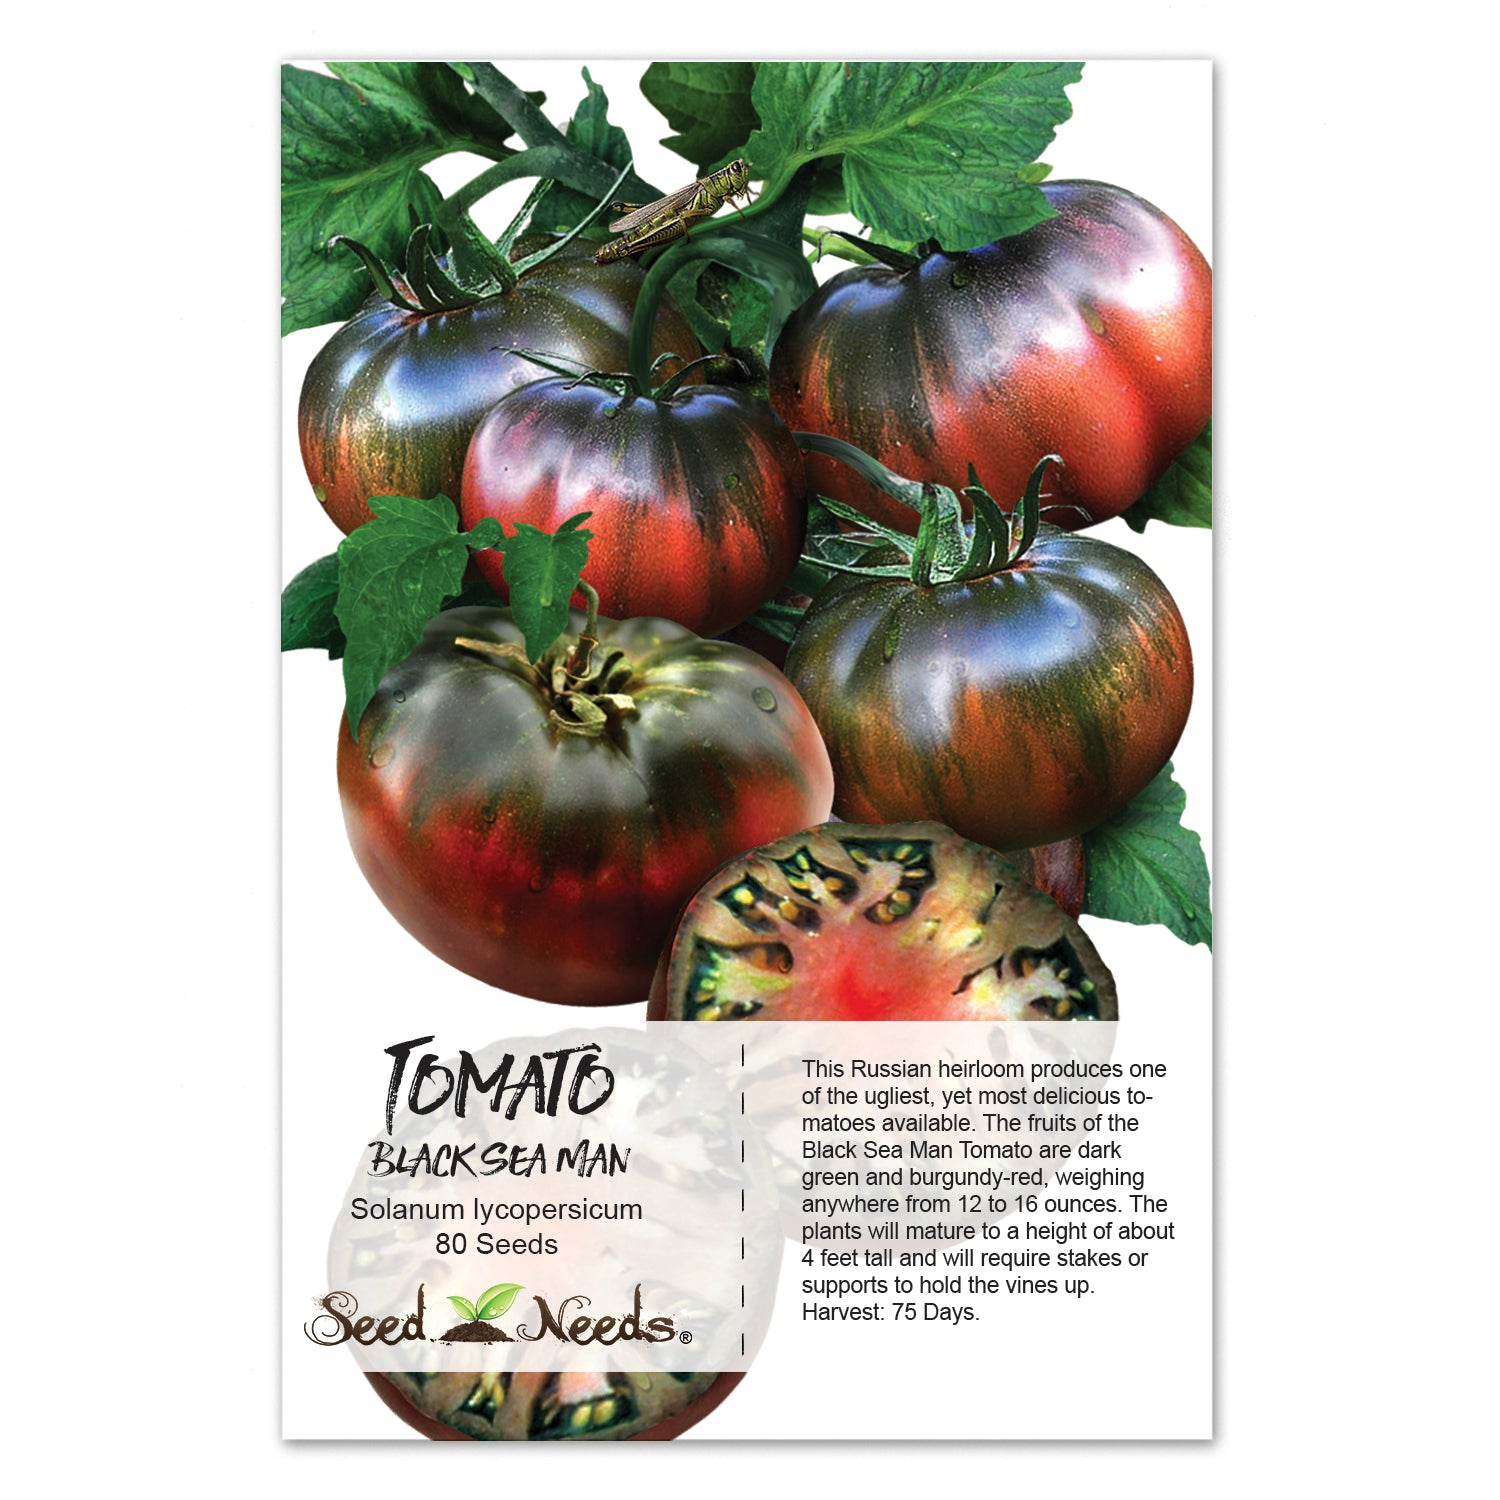 Days for tomato seed to mature